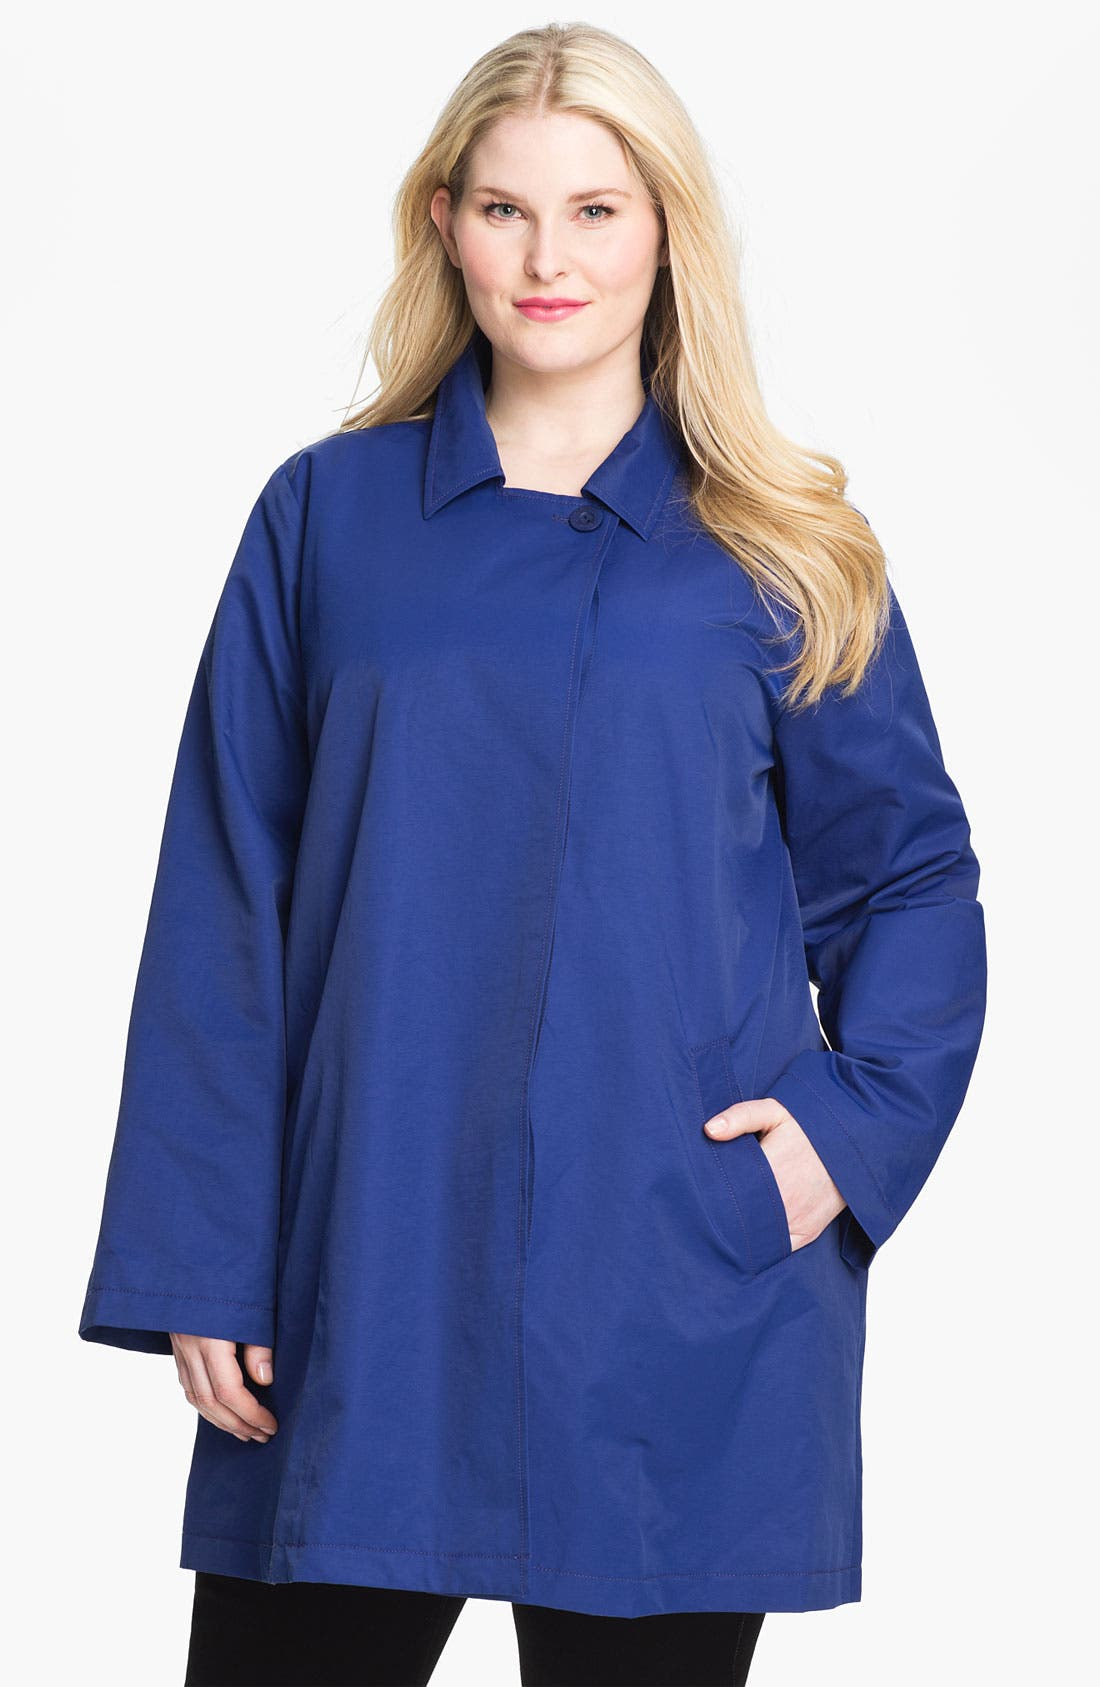 Alternate Image 1 Selected - Eileen Fisher Classic Collar A-Line Coat (Plus)